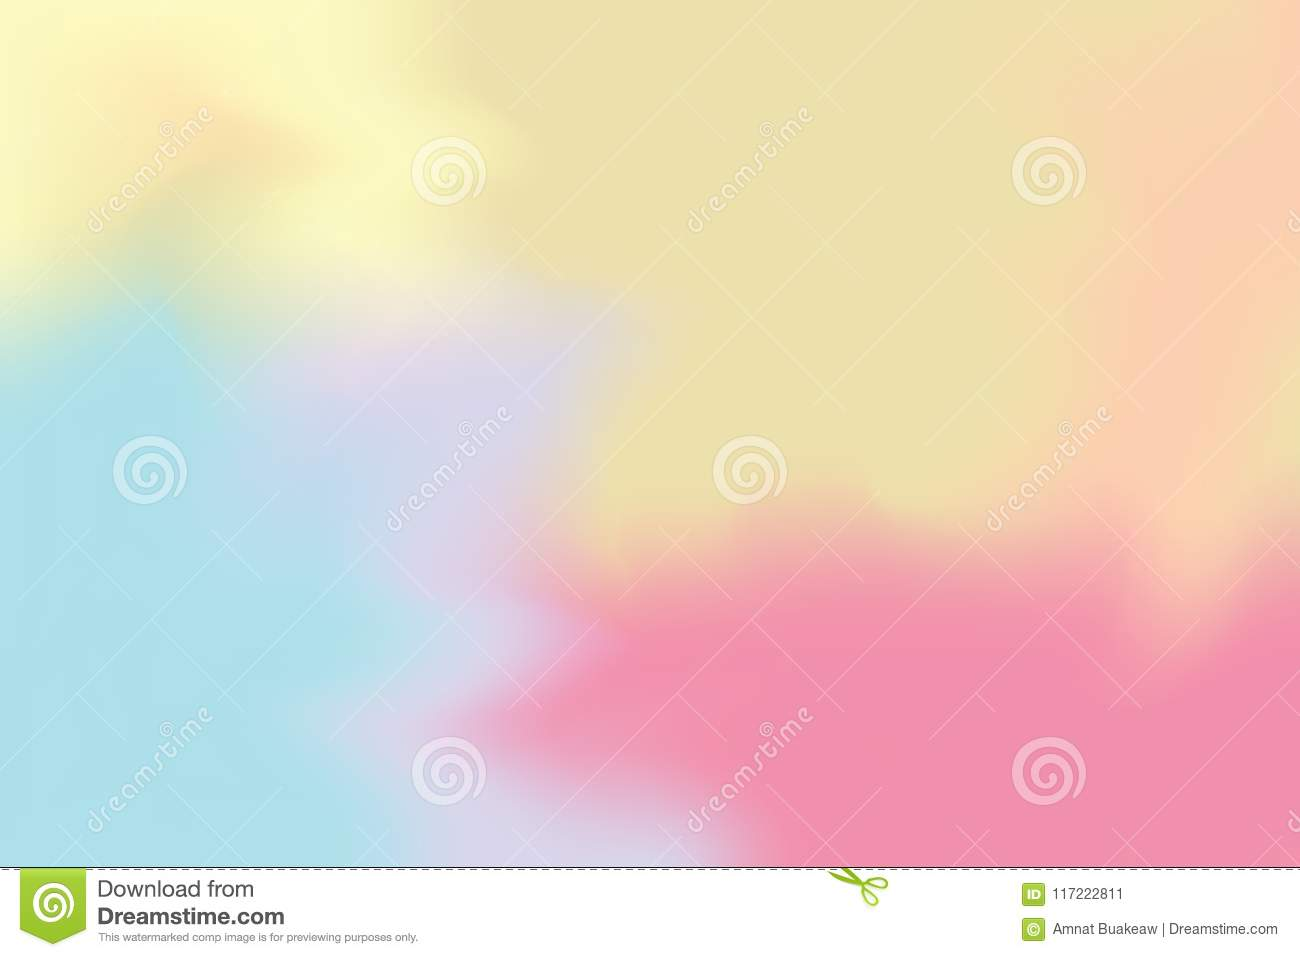 blue yellow pink soft color mixed background painting art pastel